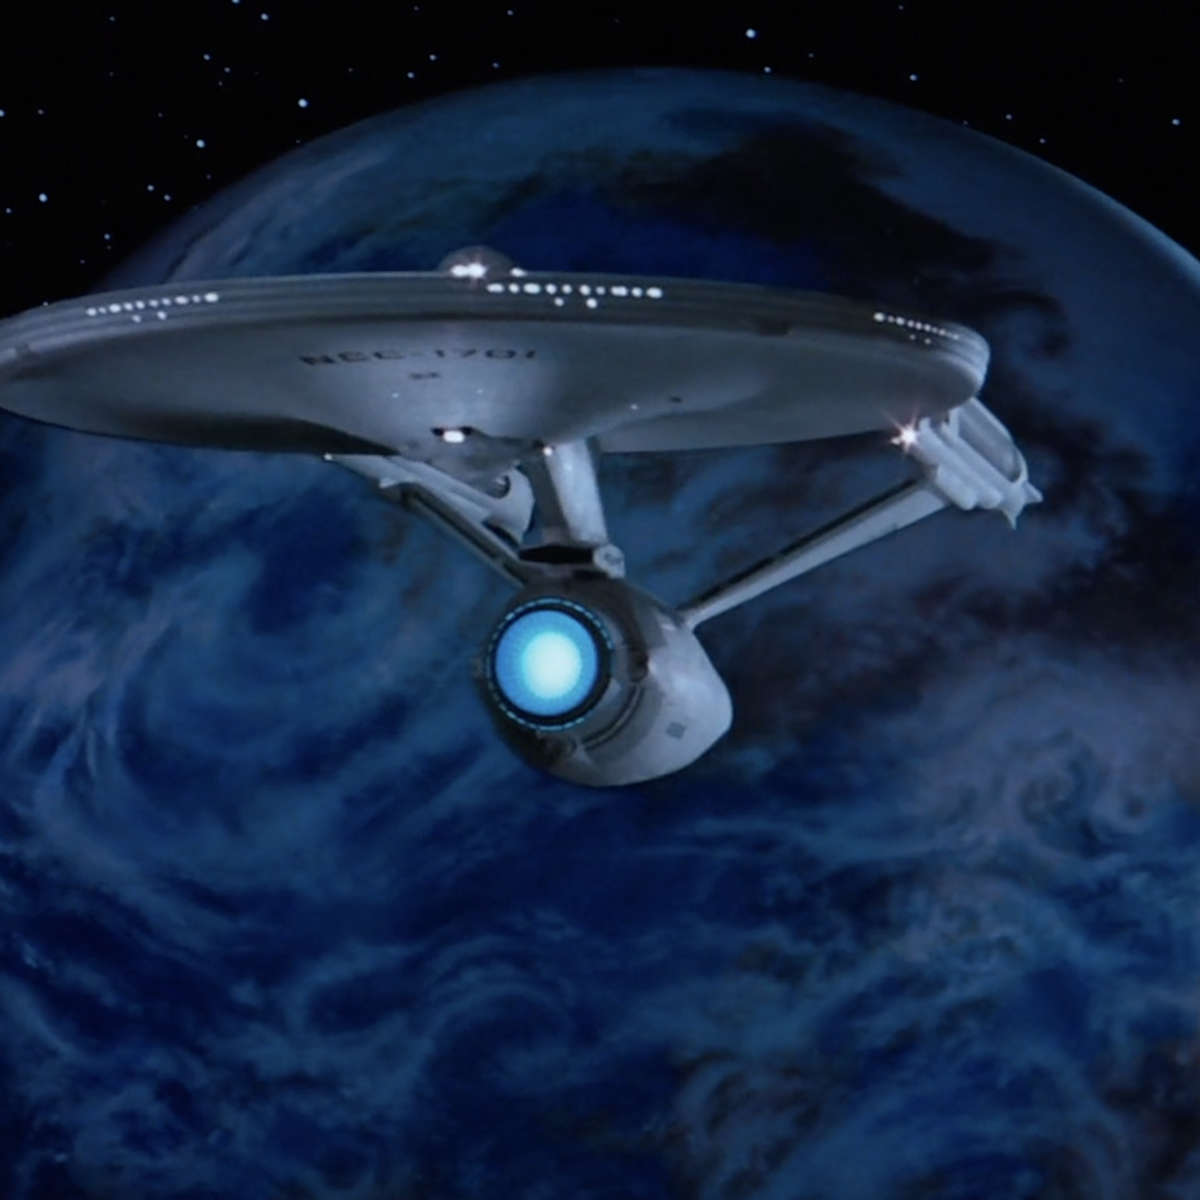 Enterprise and the Genesis planet